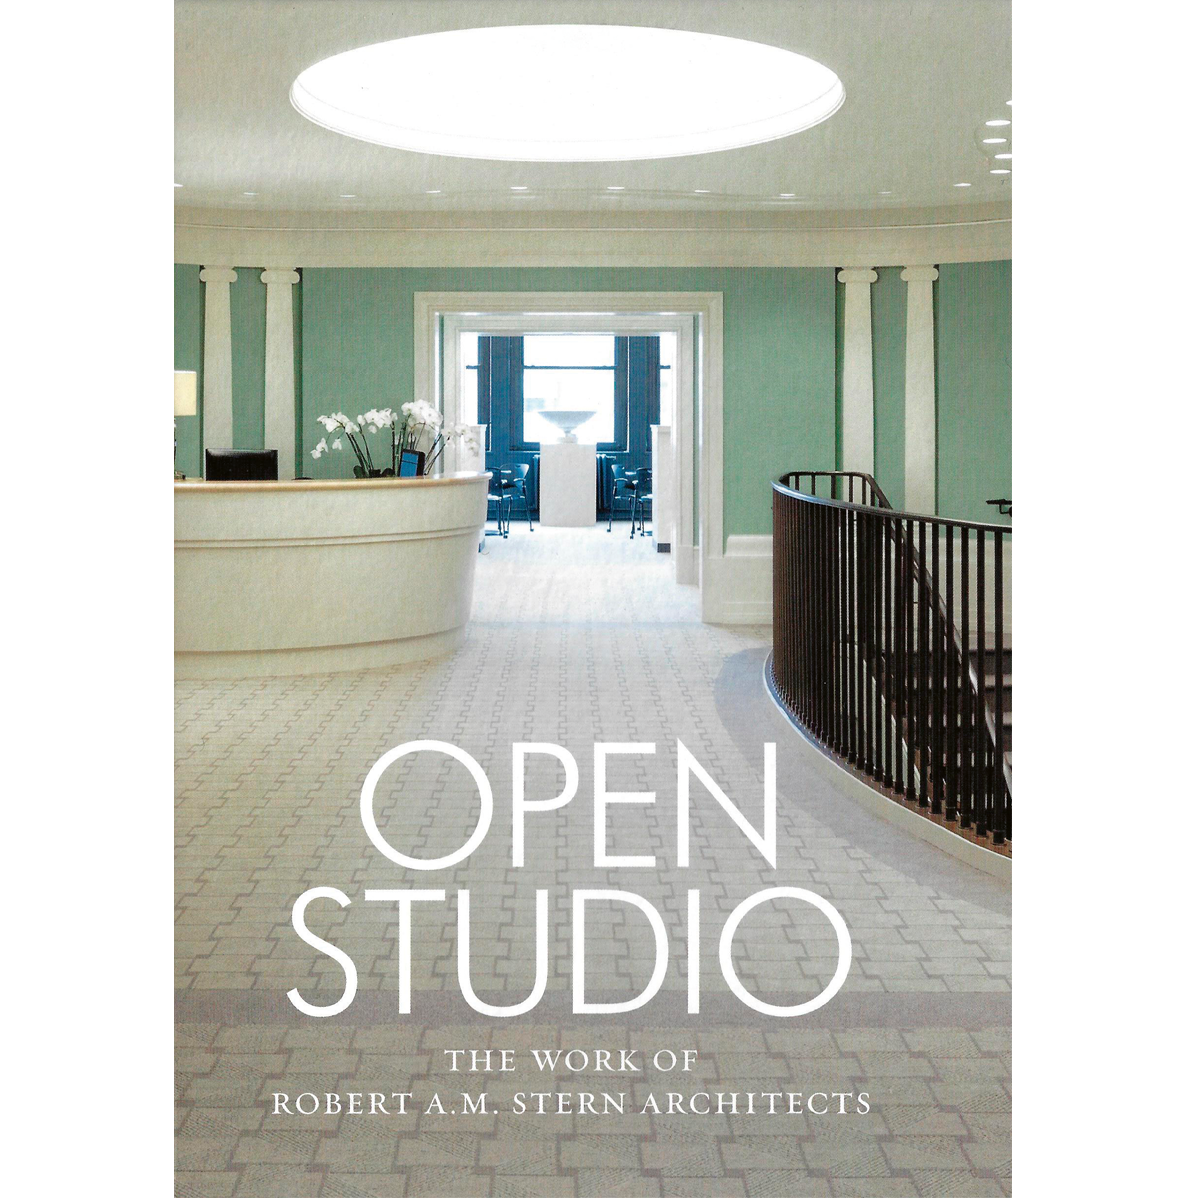 Open Studio: The Work of Robert A.M. Stern Architects